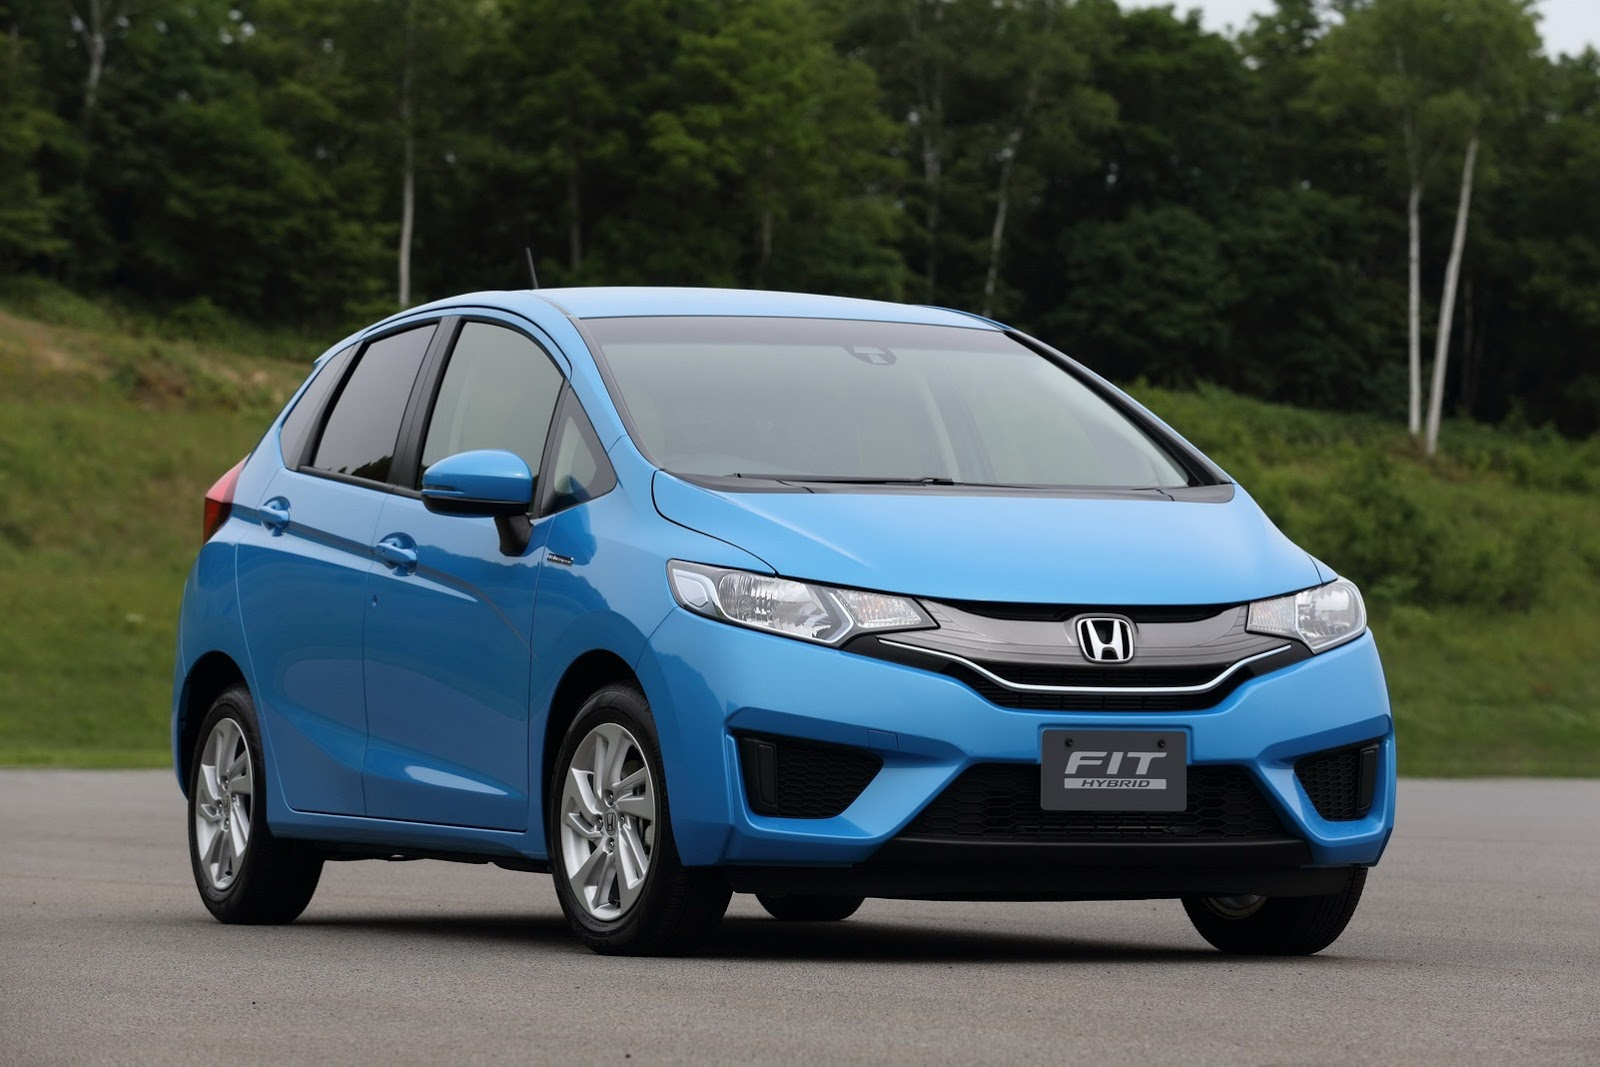 New 2014 Honda Jazz photo gallery